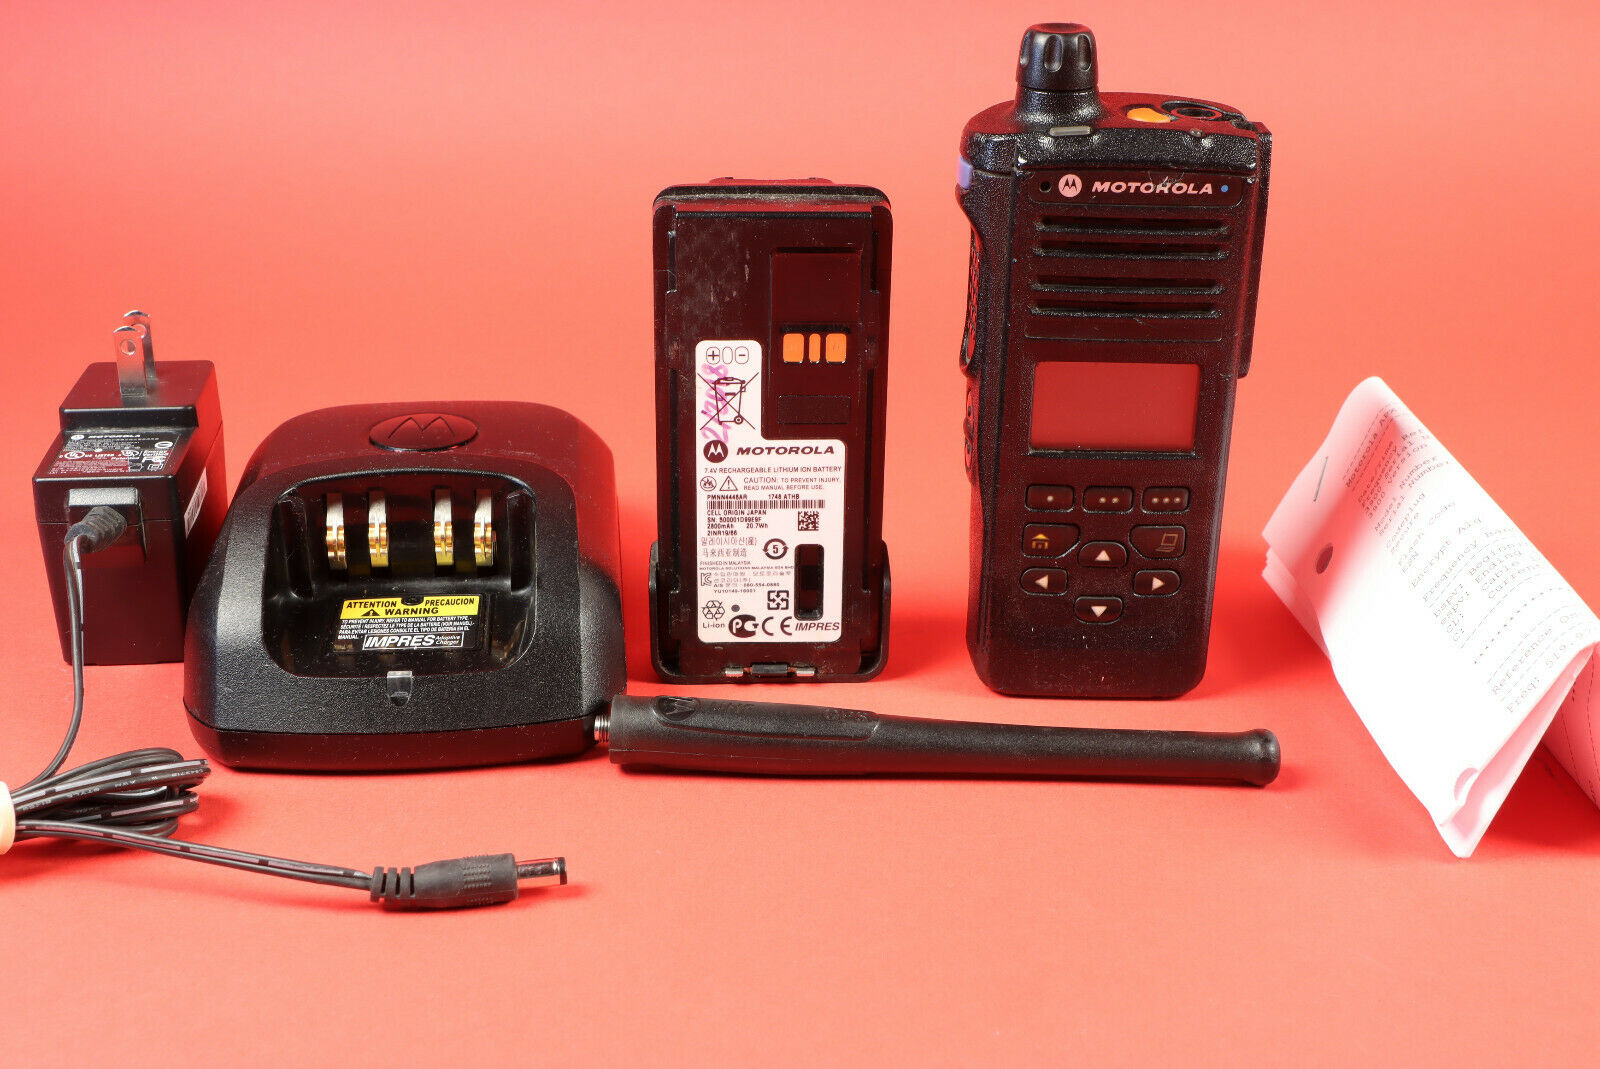 Motorola APX4000 UHF R2 + 5 Algo's + Bluetooth 1 knob 450-520MHz w/tags & Extras. Available Now for 850.00